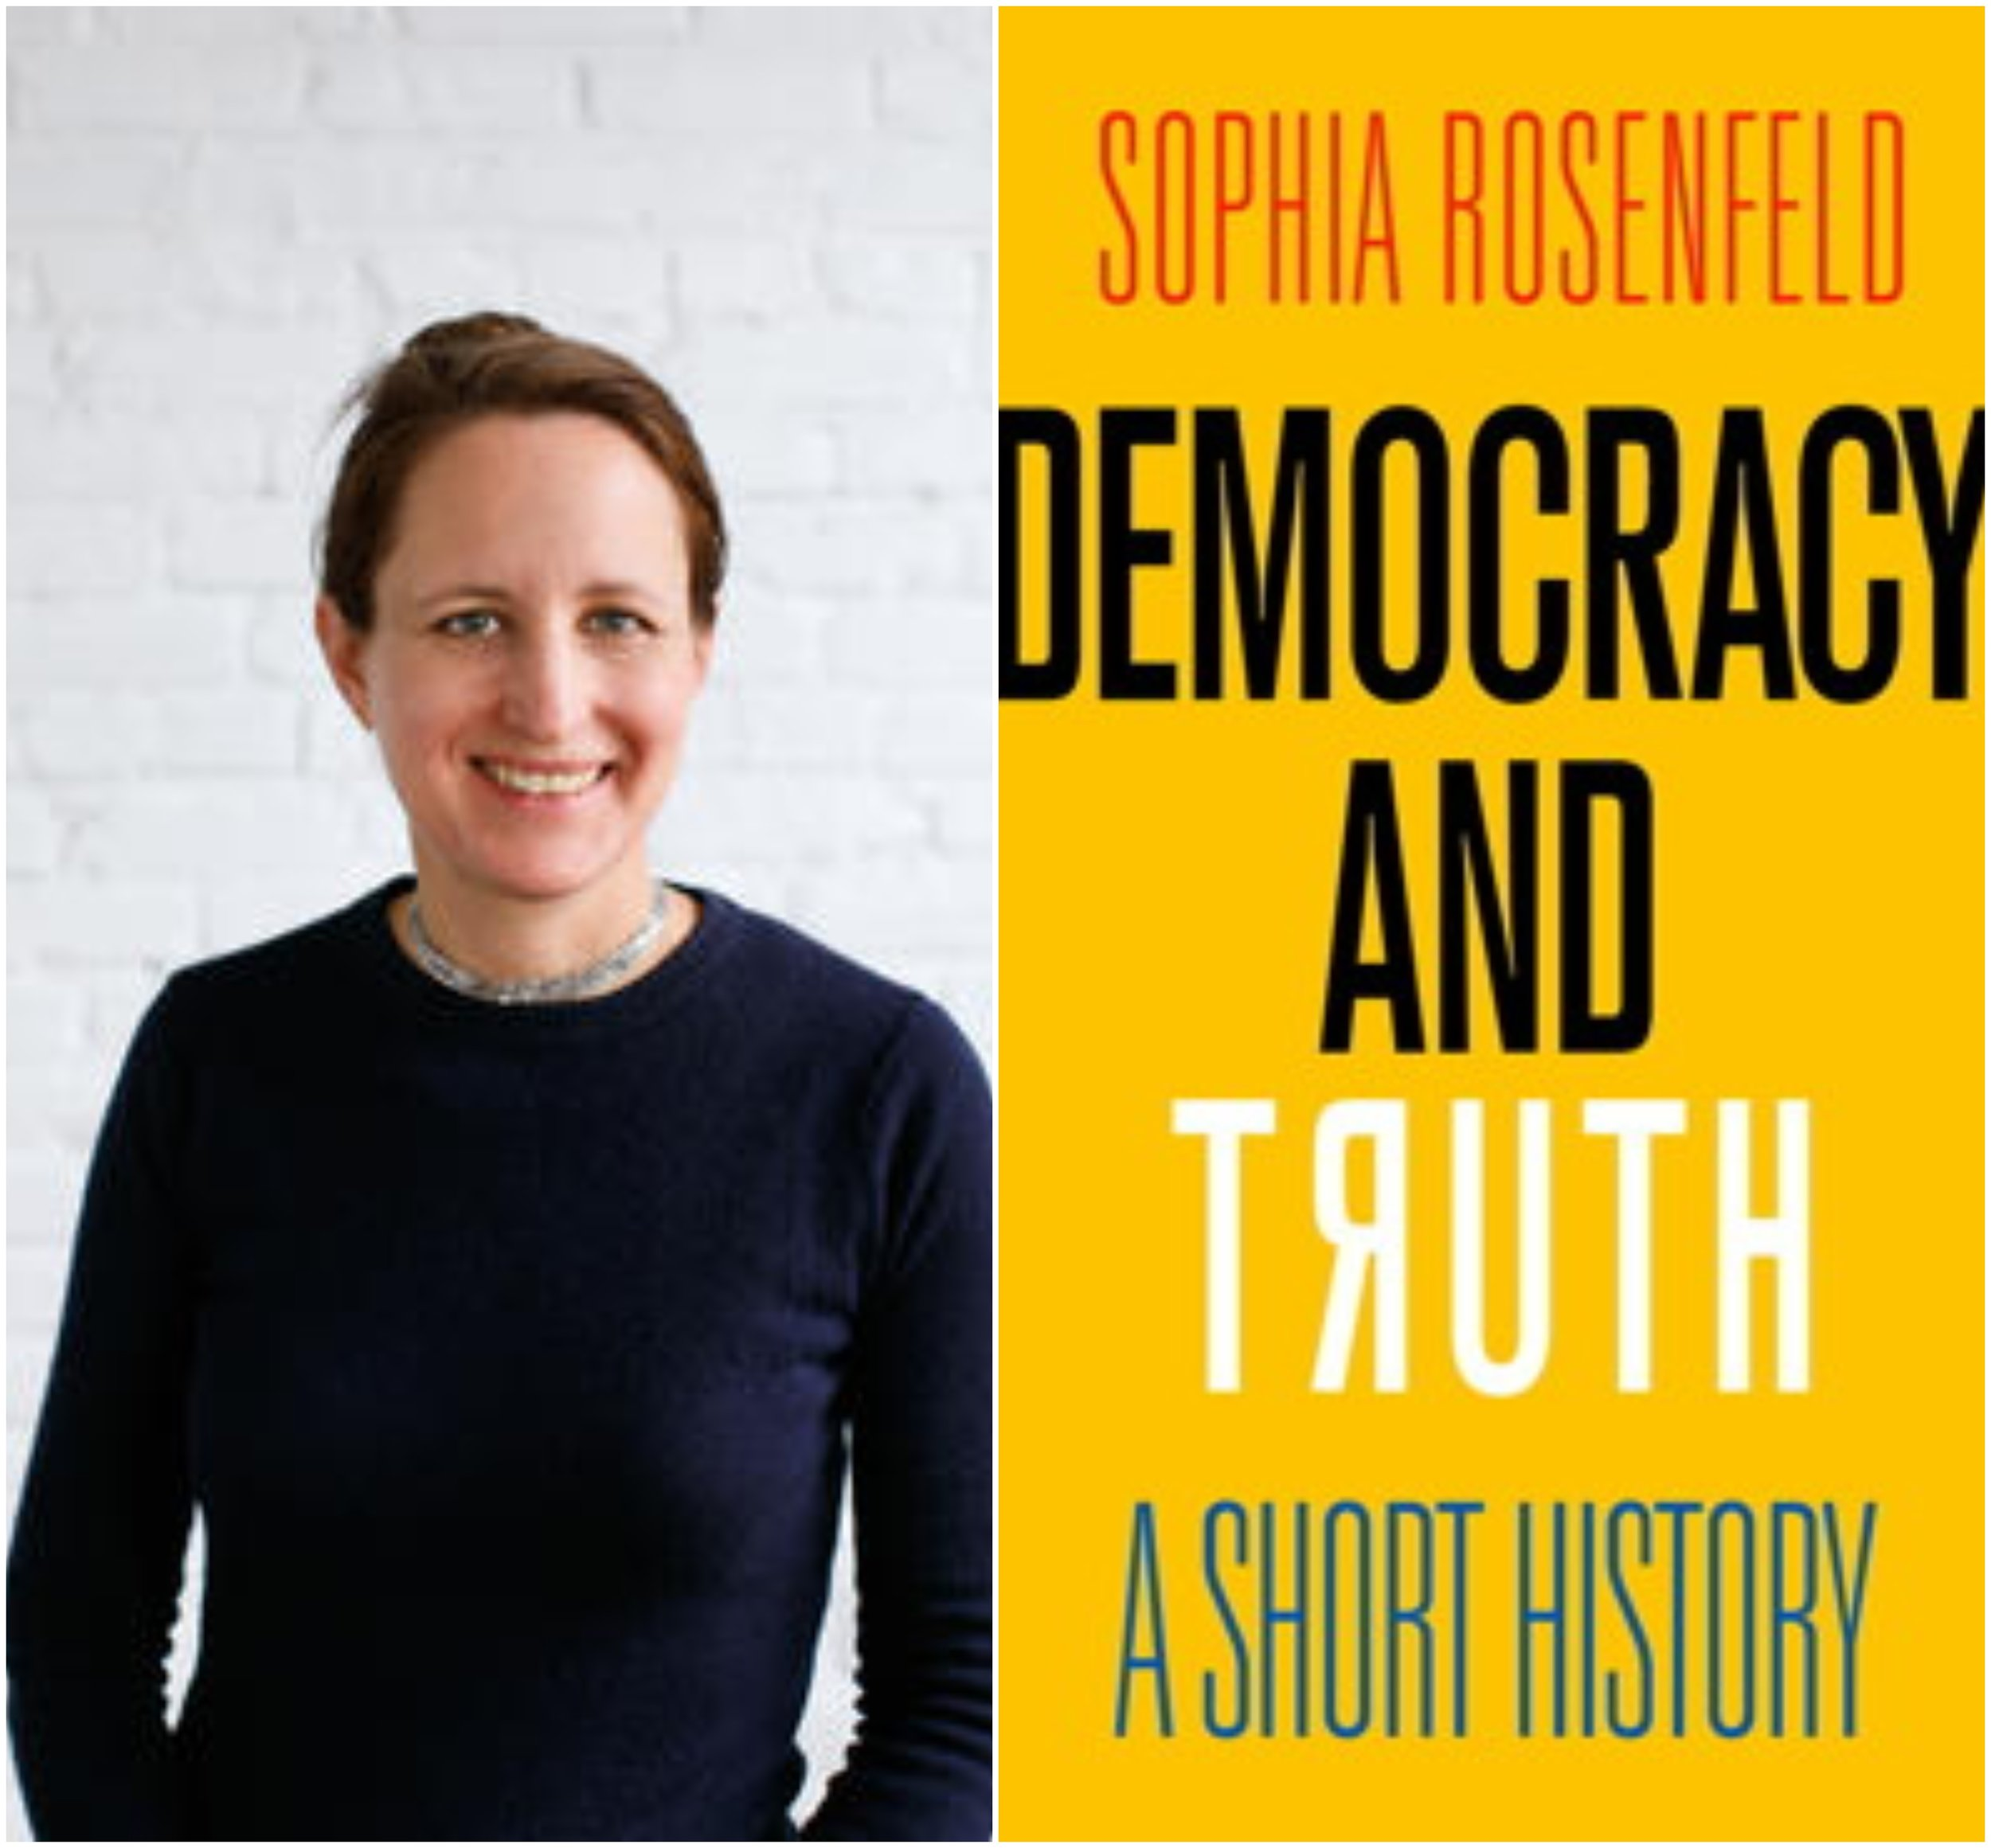 FREE SPEECH 50: Truth and Democracy, with Sophia Rosenfeld -